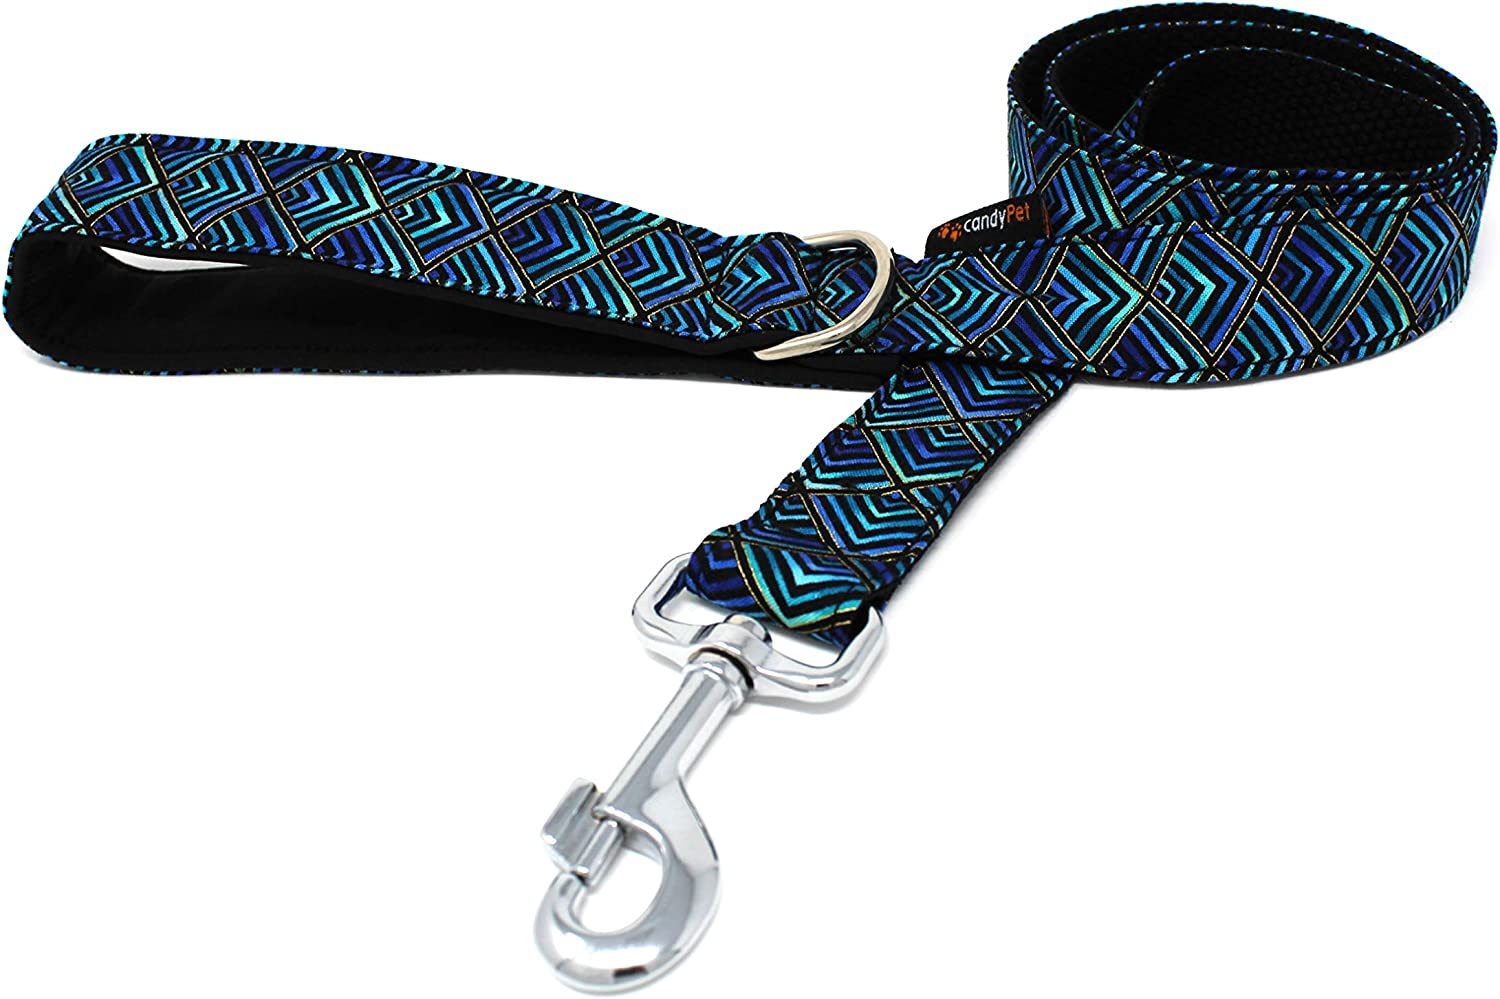 candyPet Dog Lead - In Lowest price challenge stock 120 cm Padded Handle with